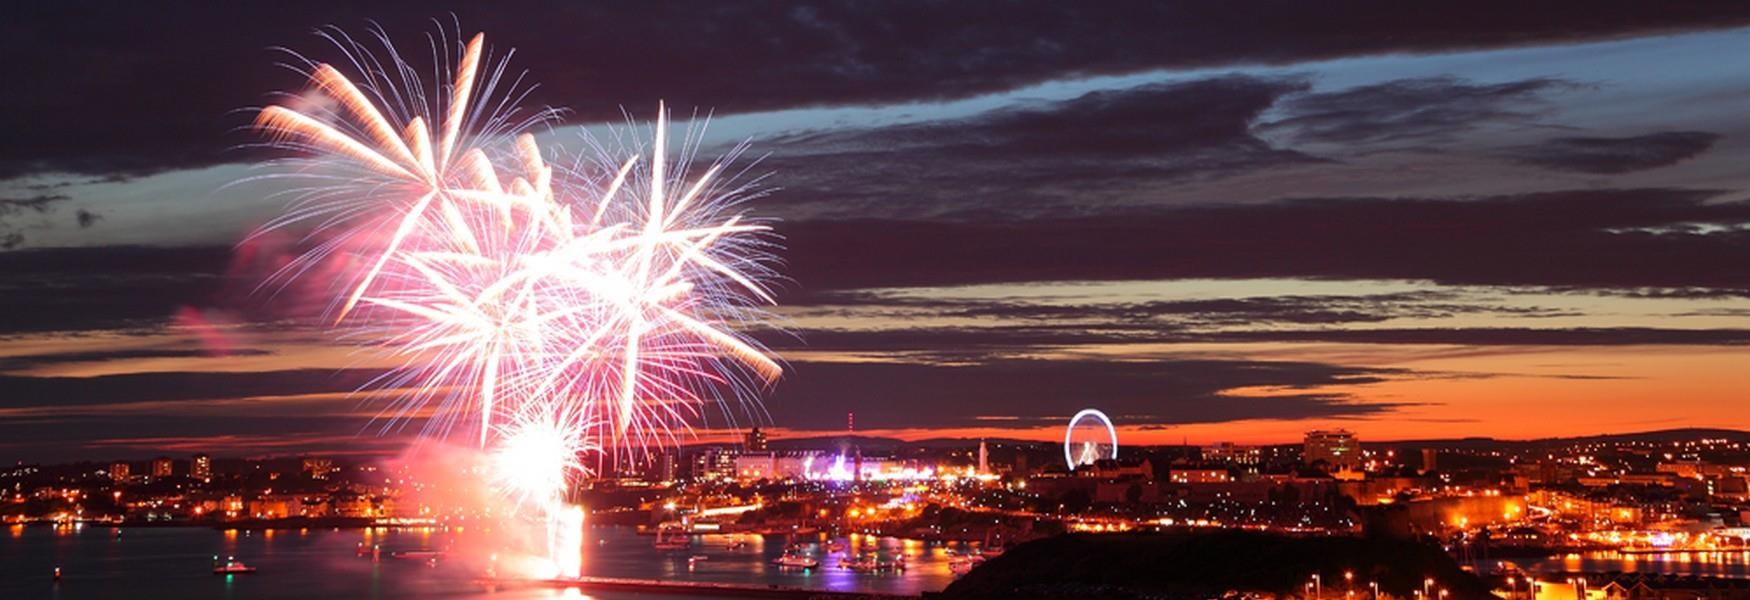 National Fireworks Championship Plymouth